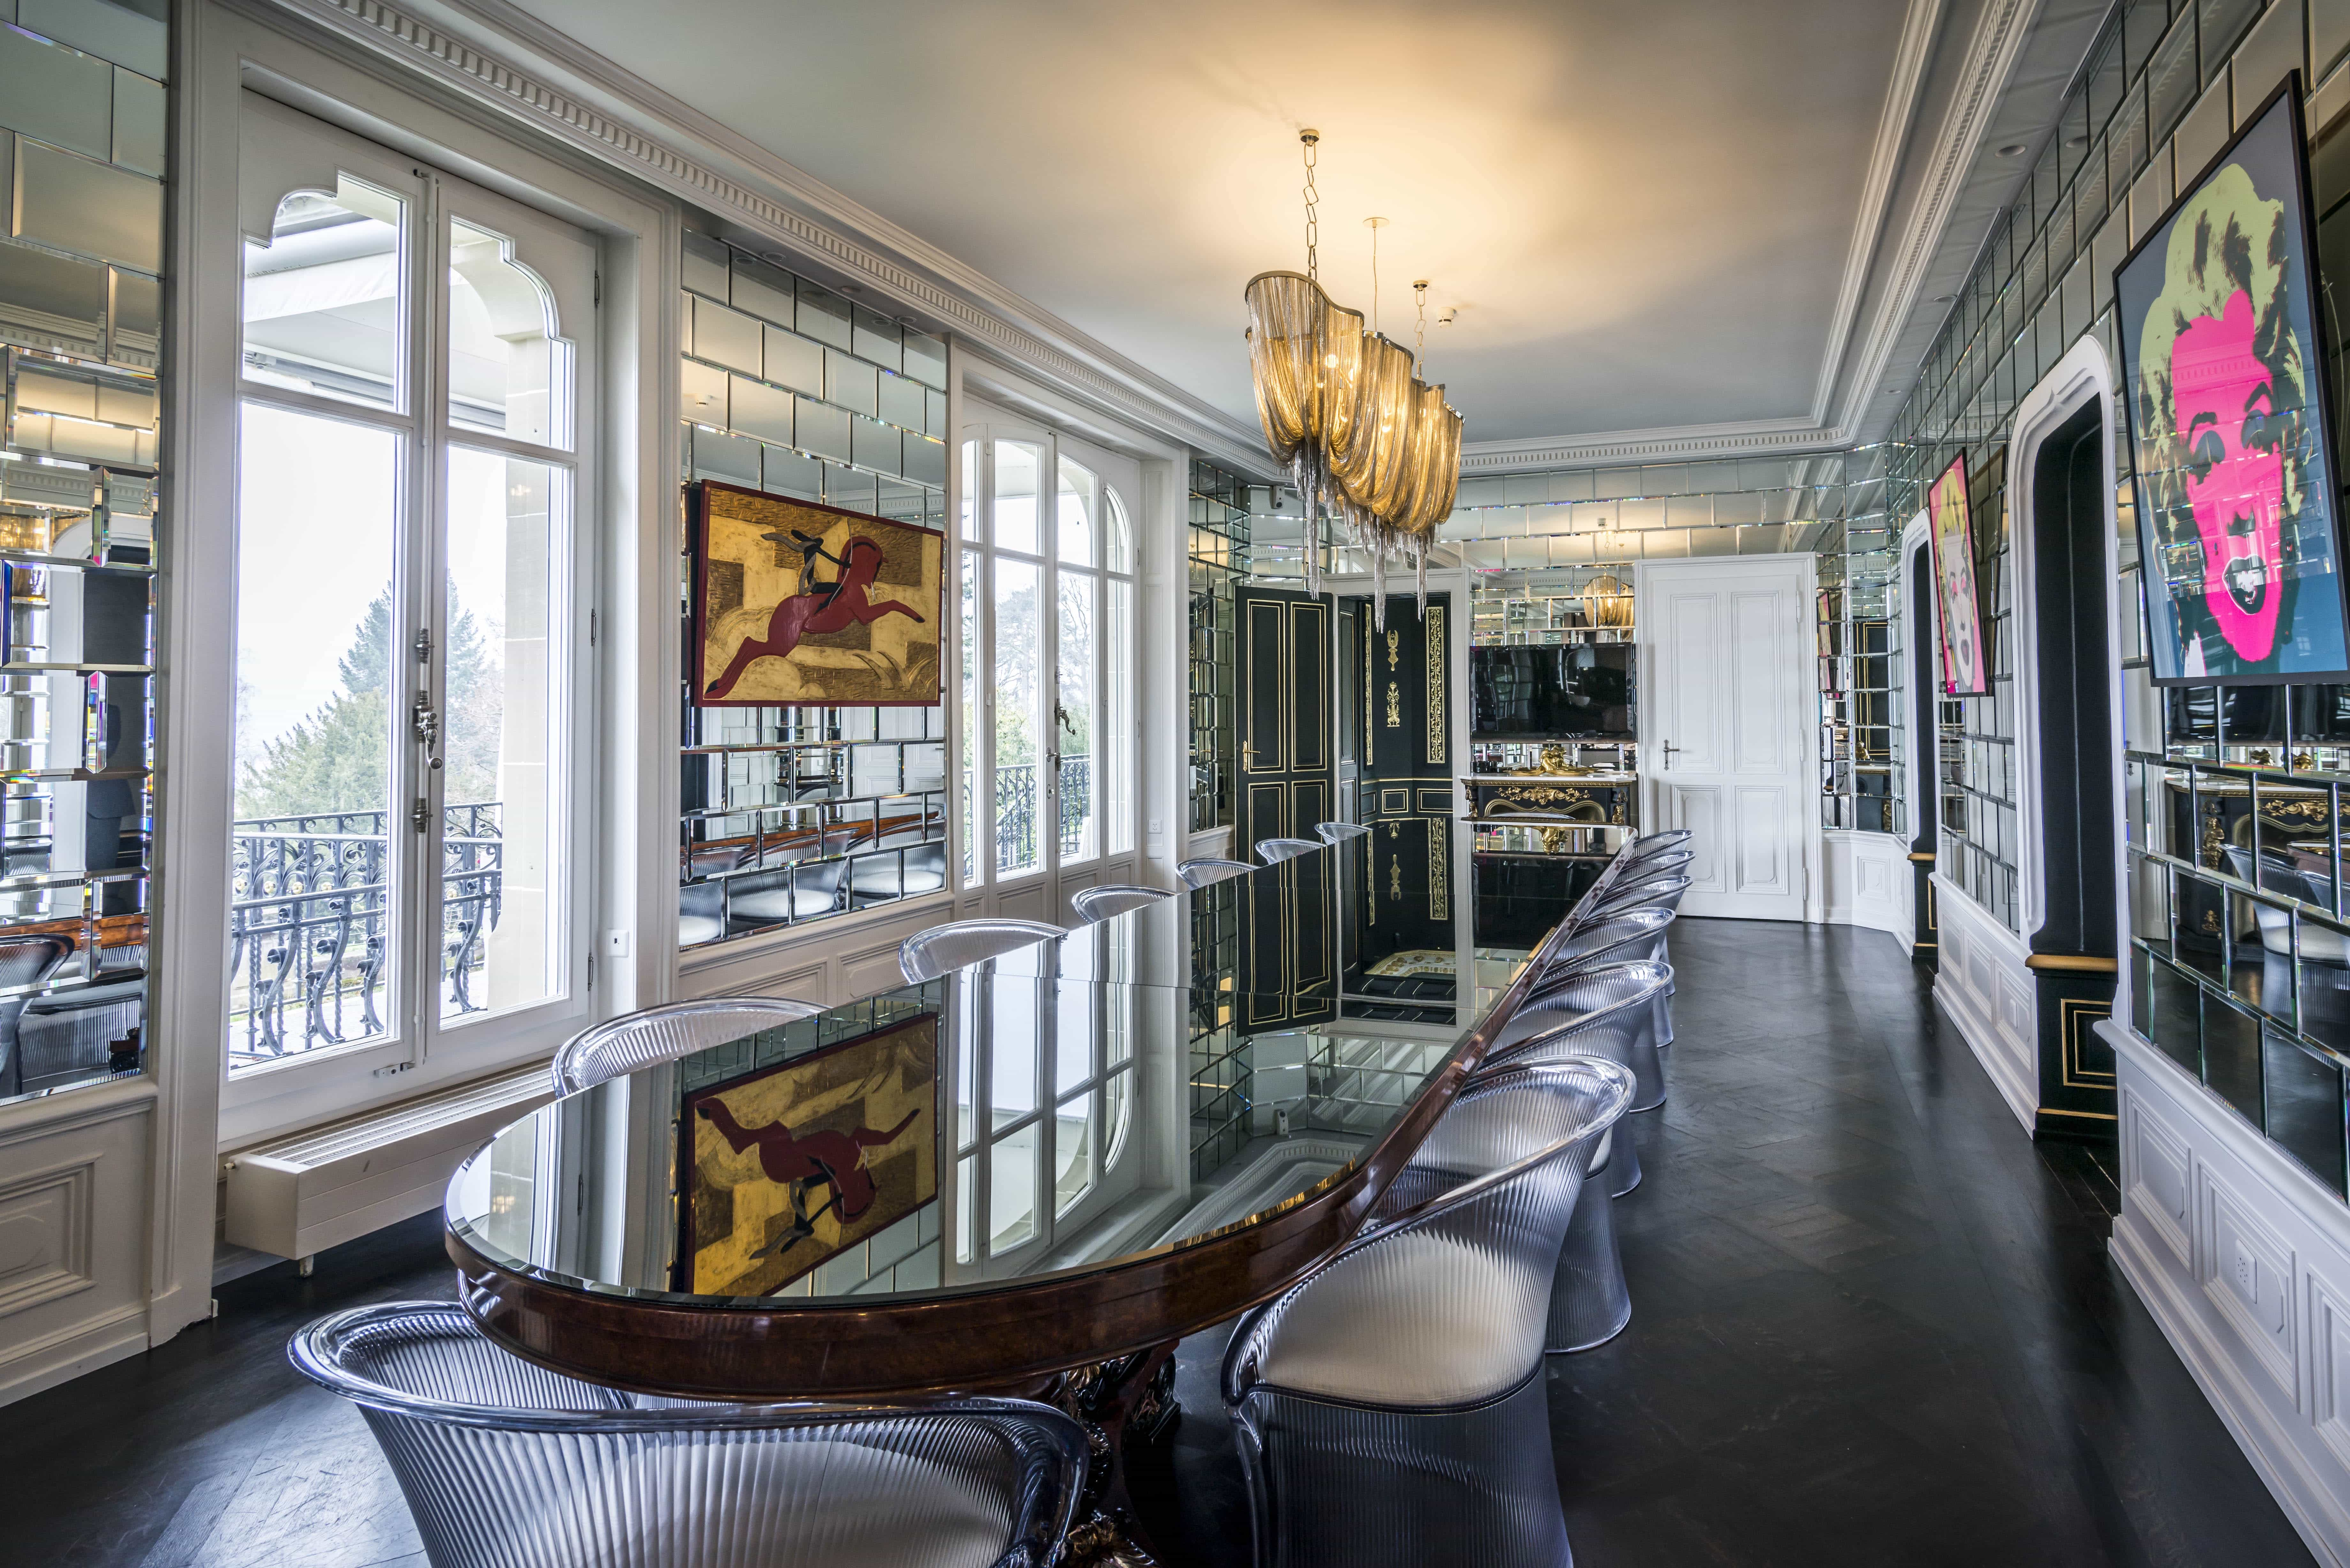 Featured Image of Mirrored Wall Tiles In Glitz And Glamour Art Deco Dining Room